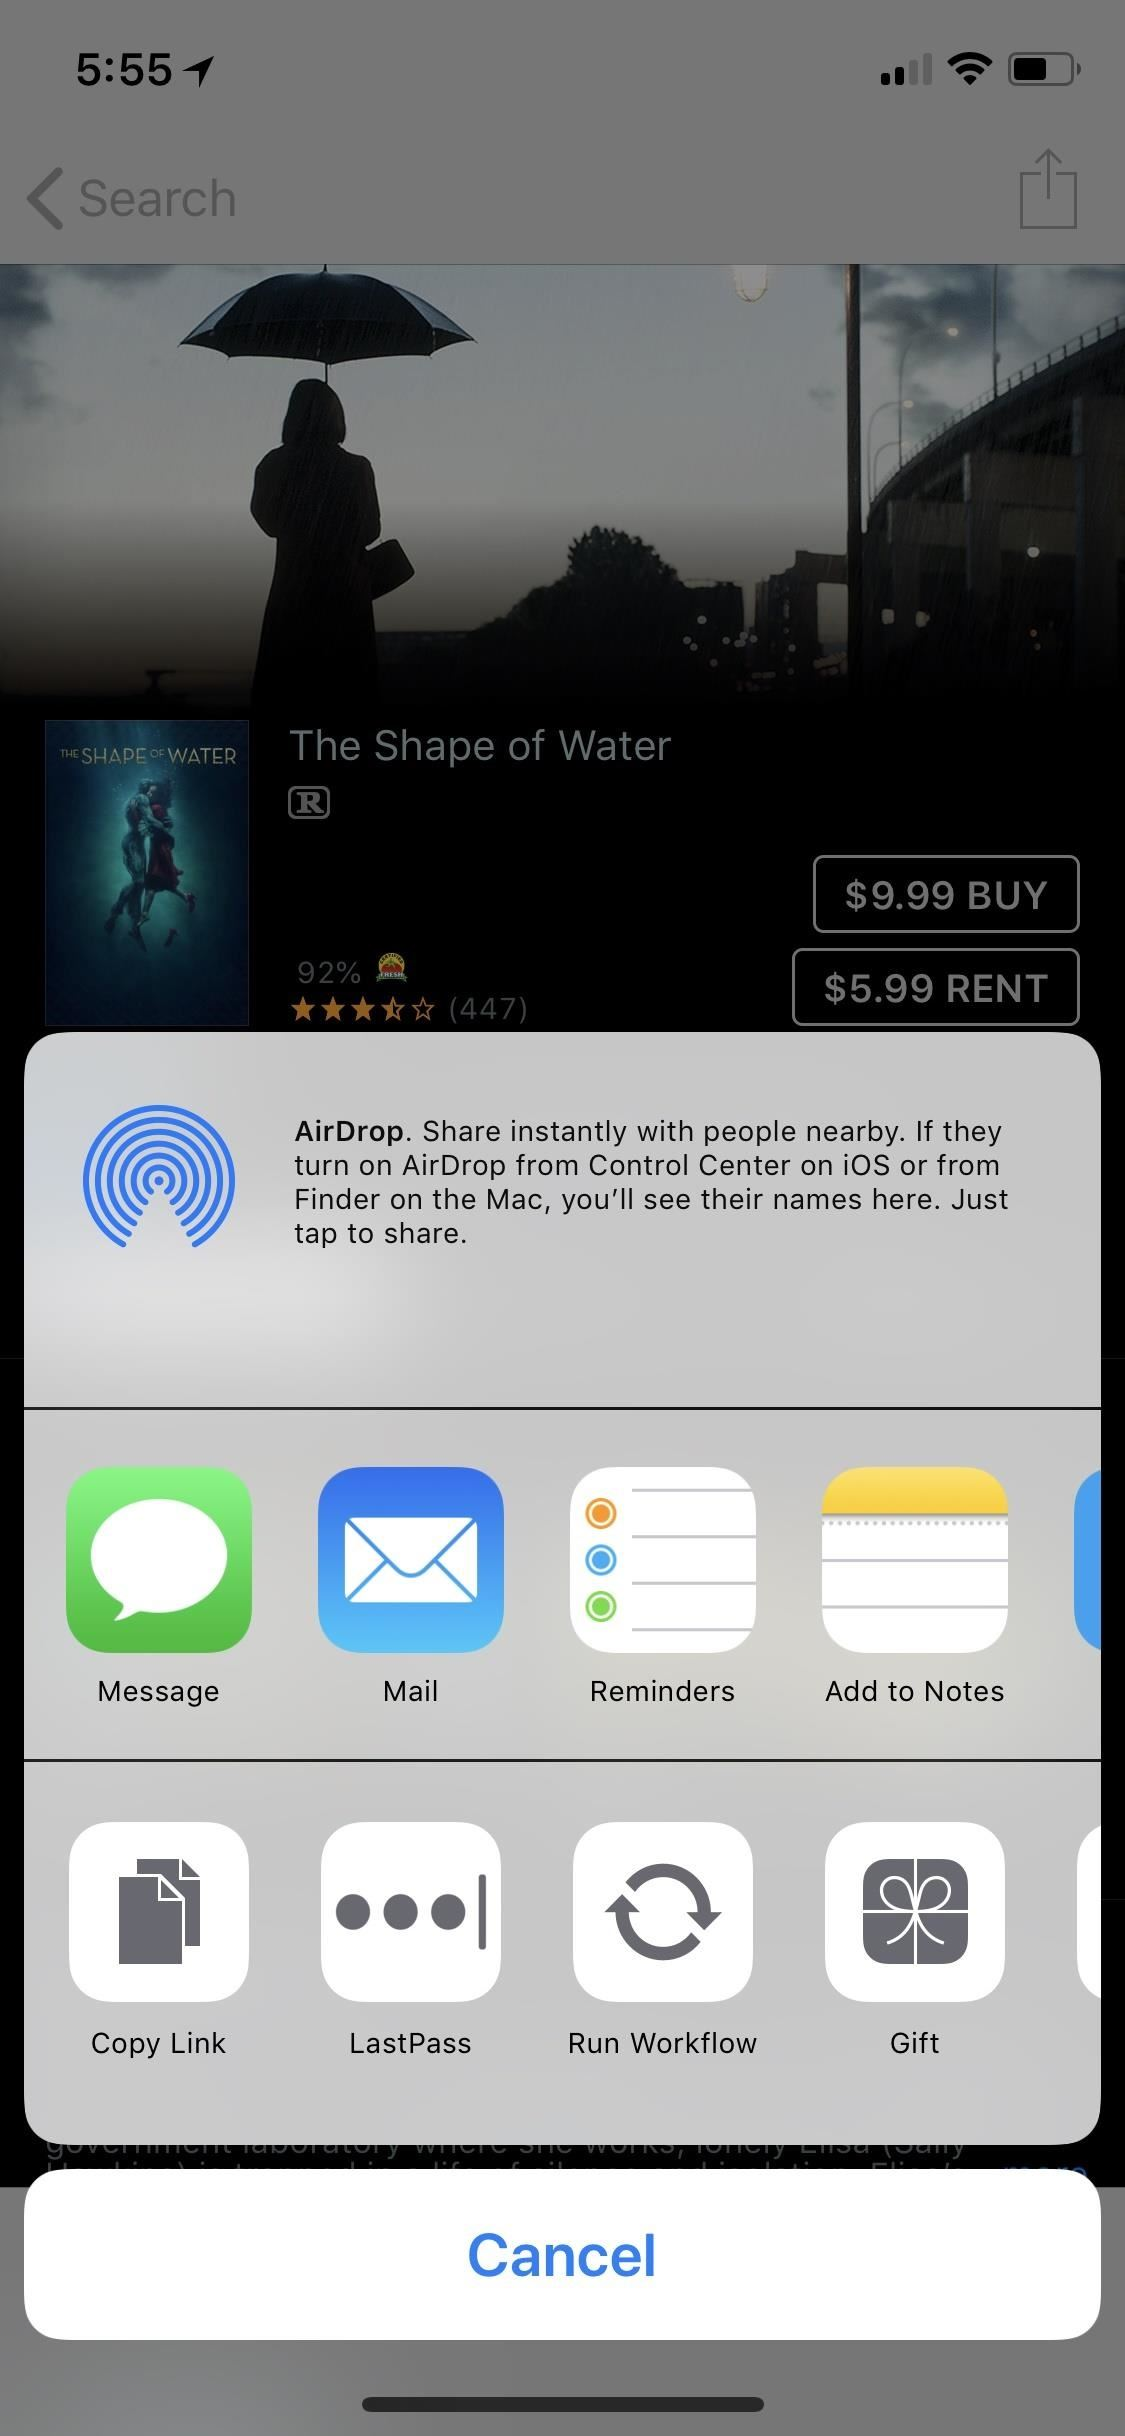 How to Gift iOS Apps, Games, Movies, Music, Books & TV Shows to iPhone Users